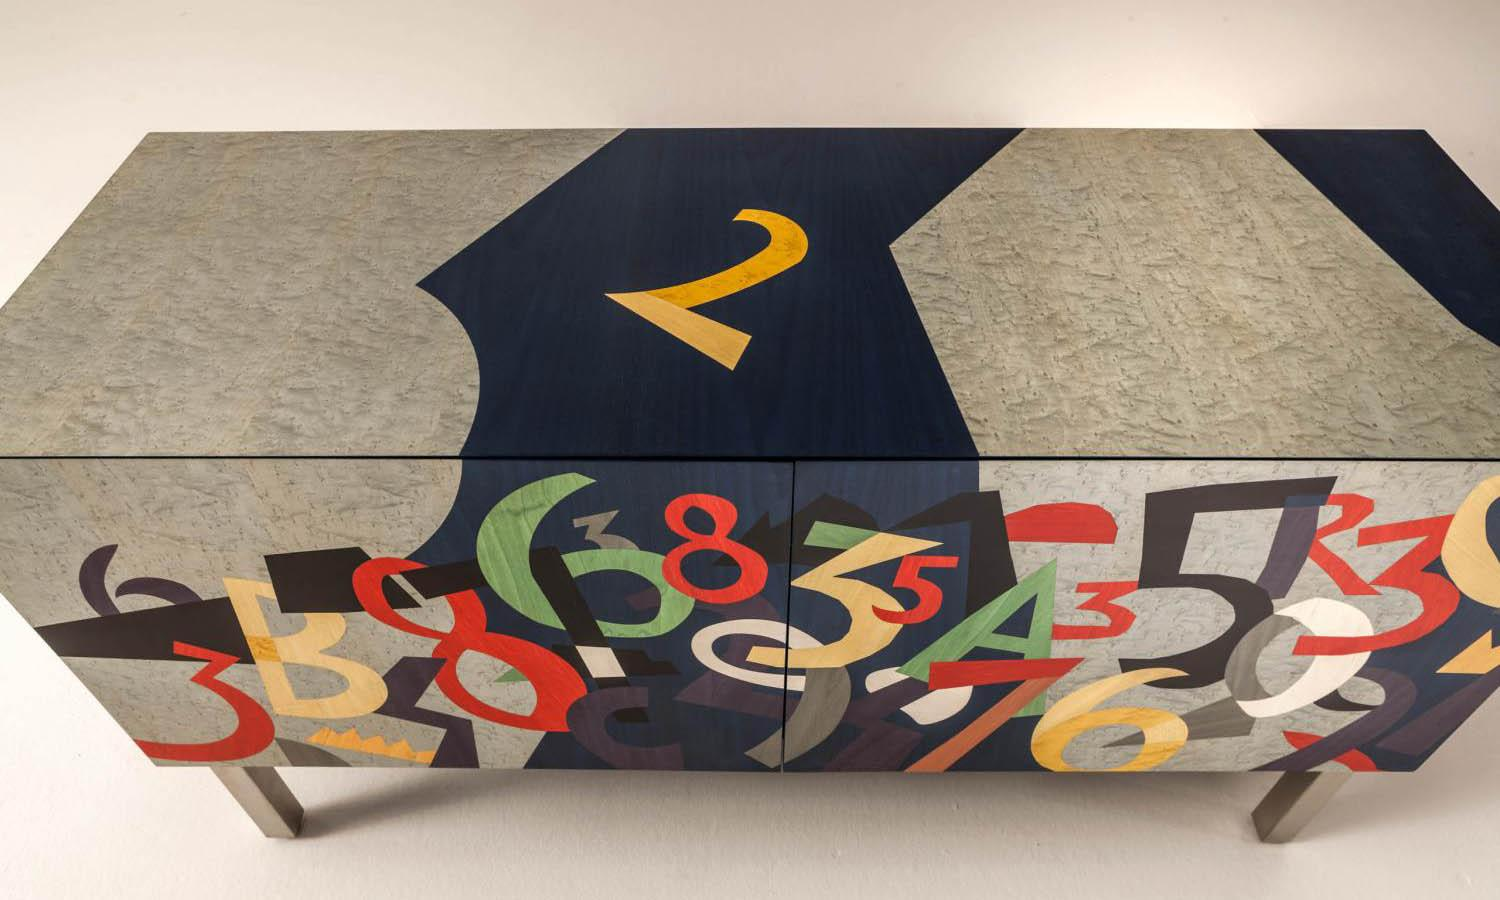 Laurameroni limited edition sideboard in inlaid wood by Ugo Nespolo for an artistic and exclusive interior design